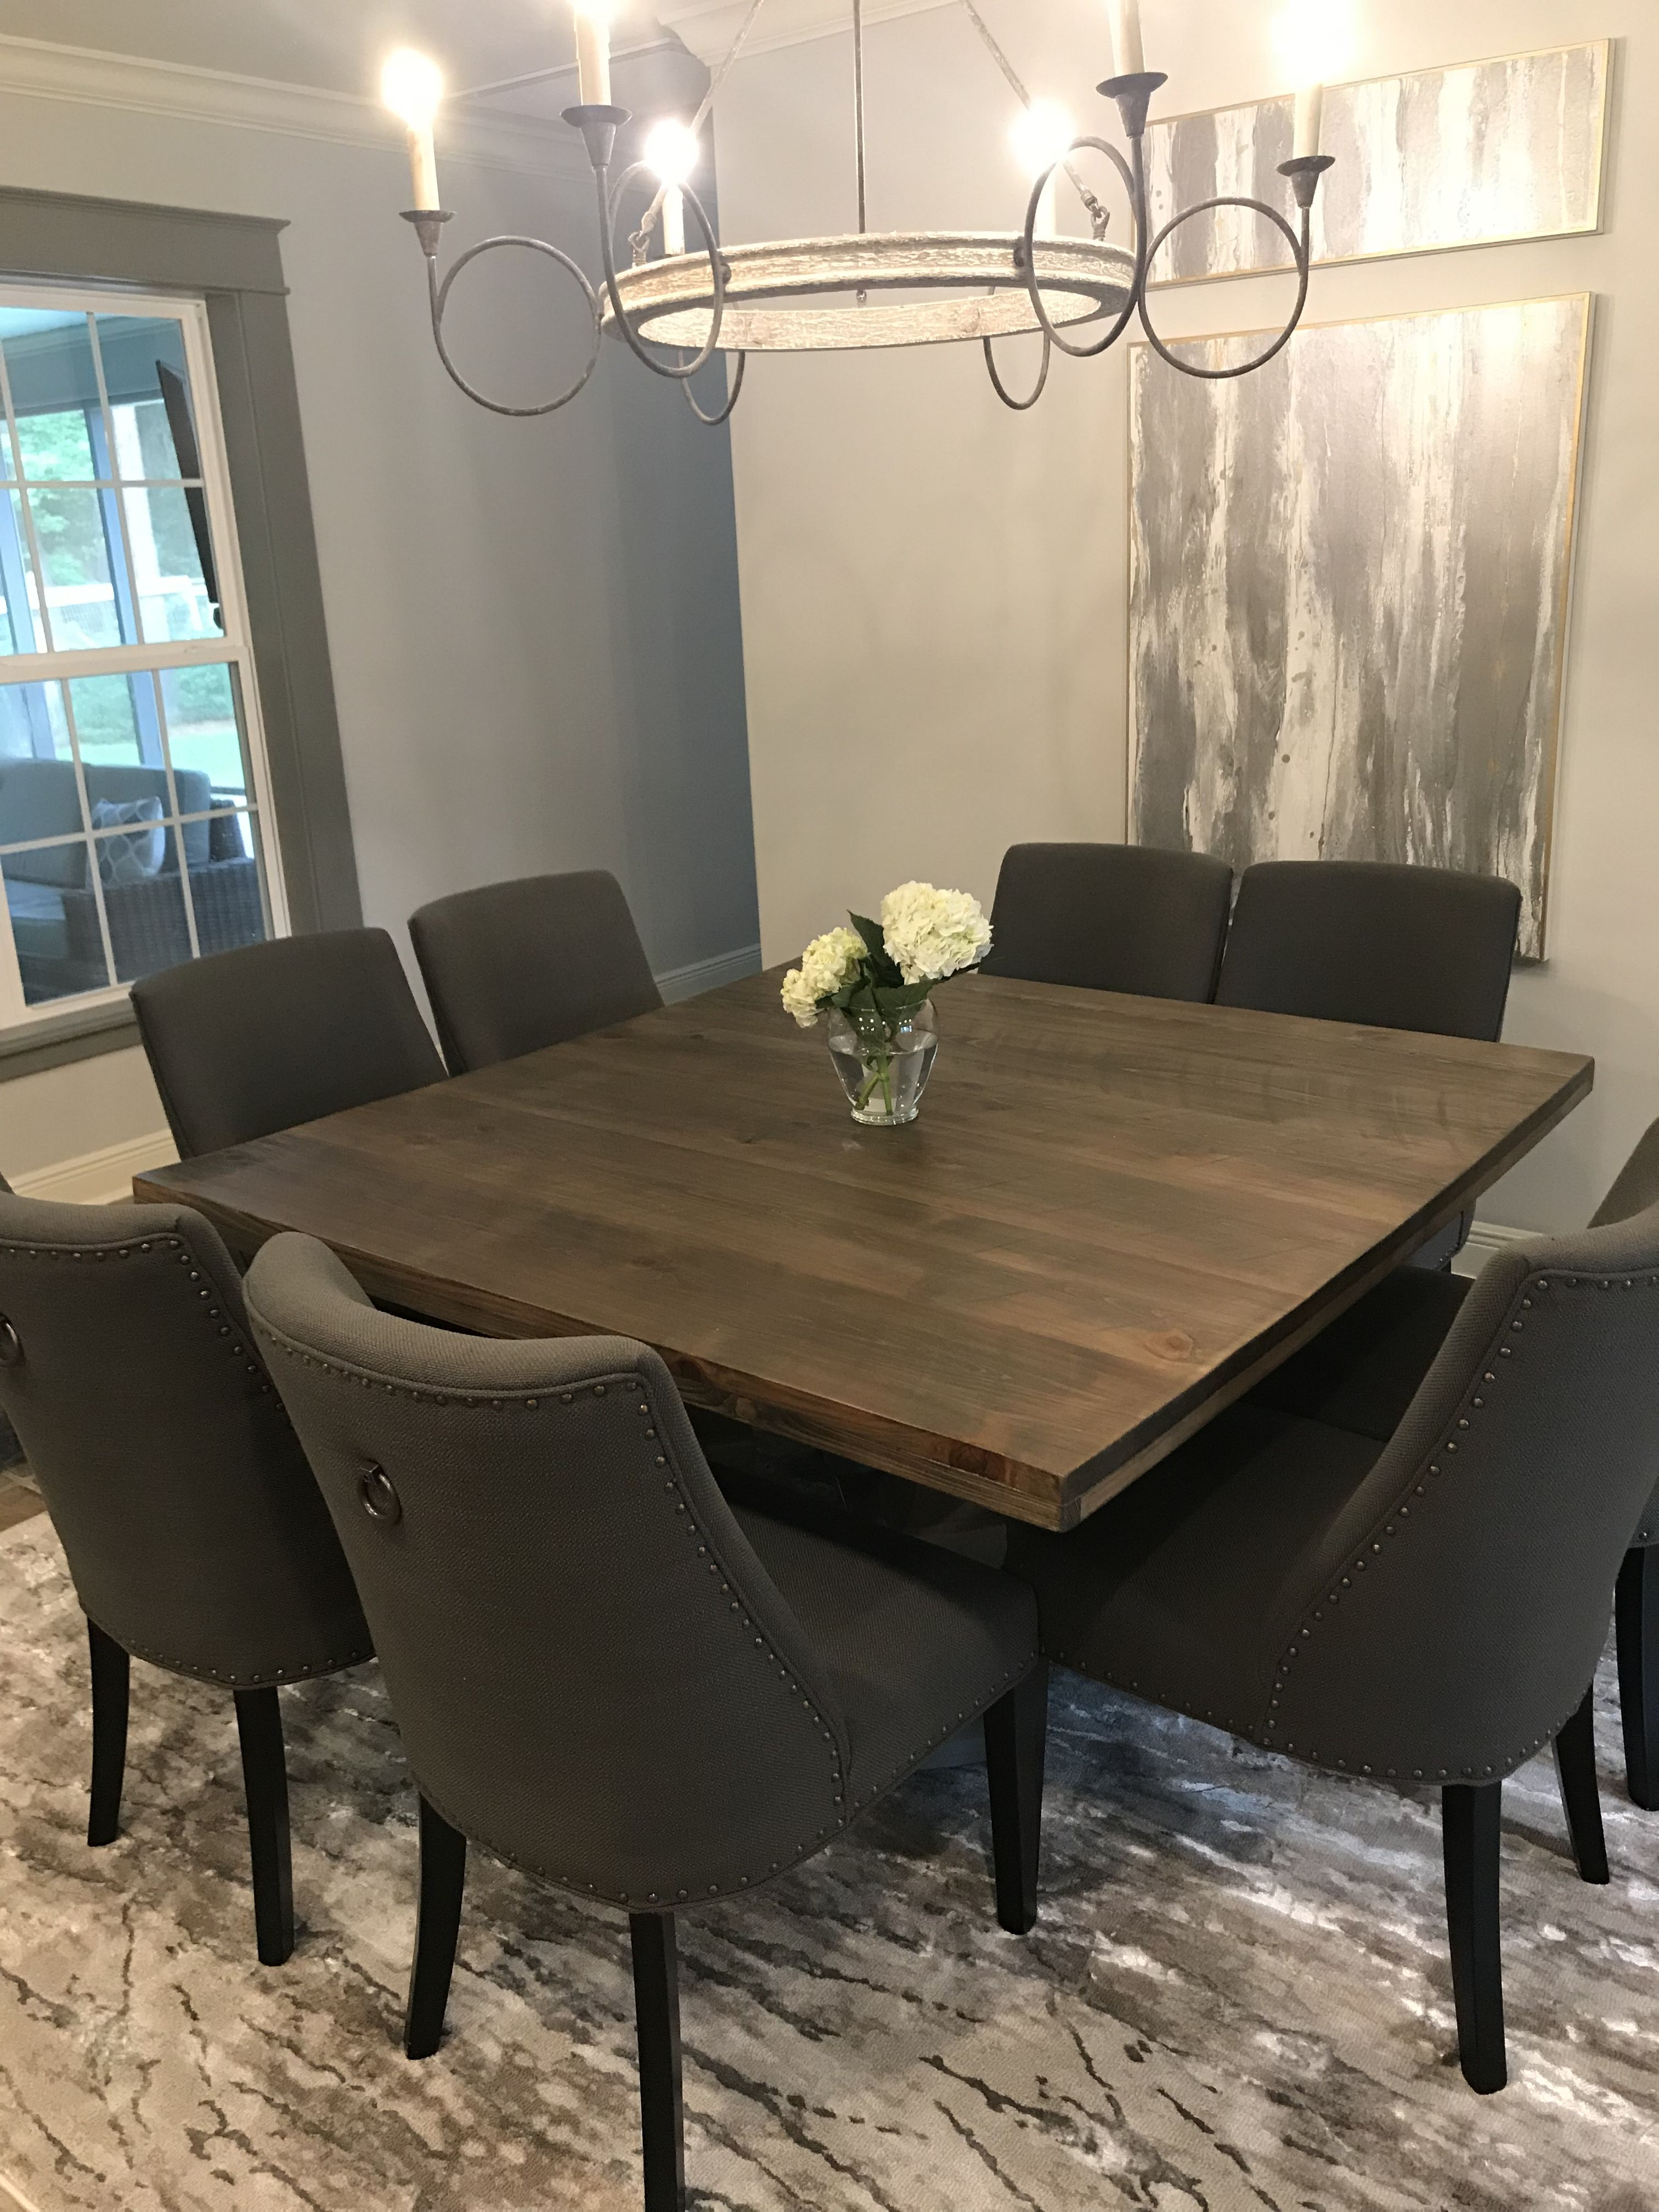 60 Inch Square Table Dining Table Table Square Tables